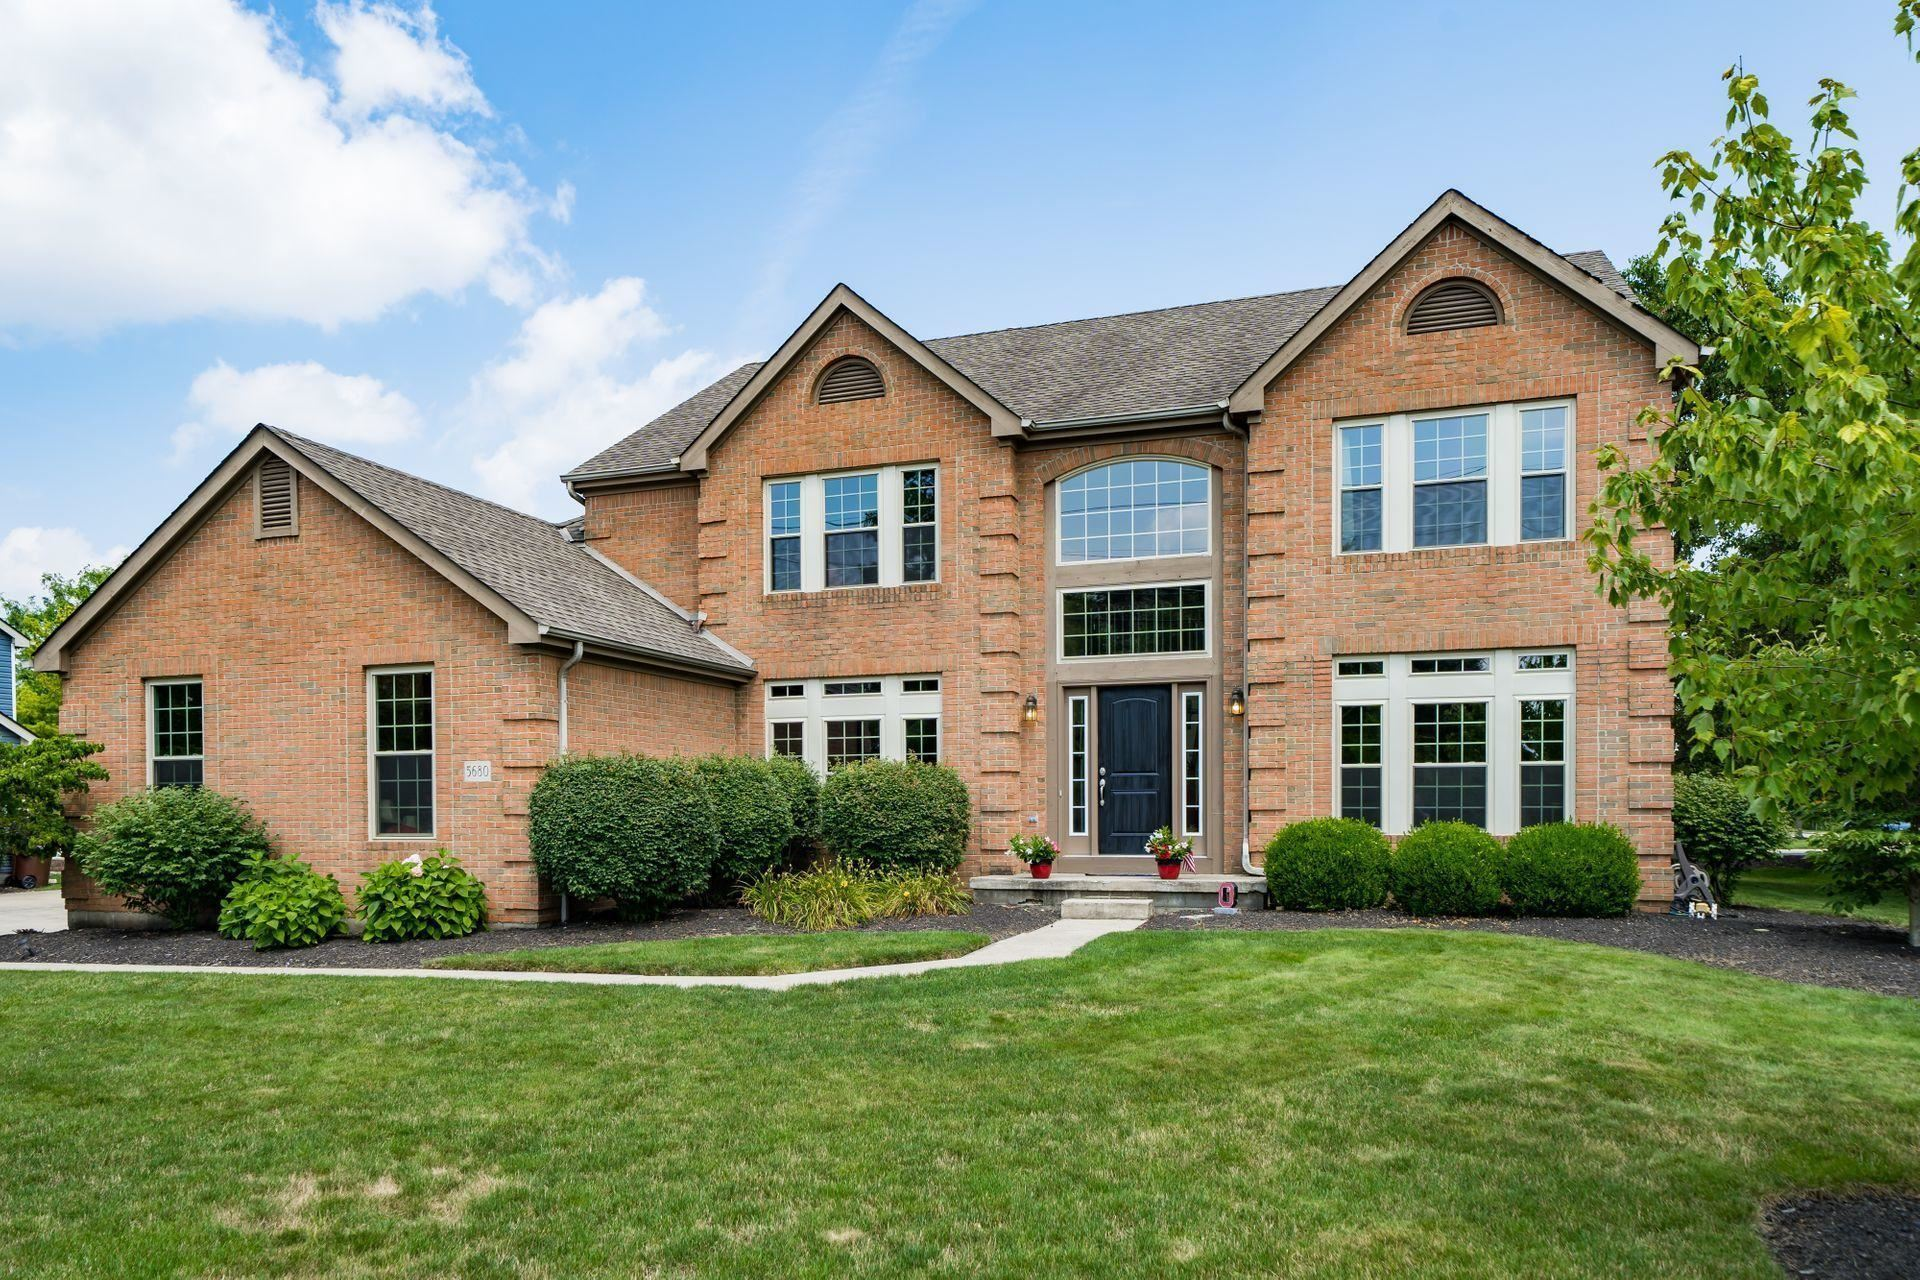 Photo for 5680 Wilcox Road, Dublin, OH 43016 (MLS # 221029565)